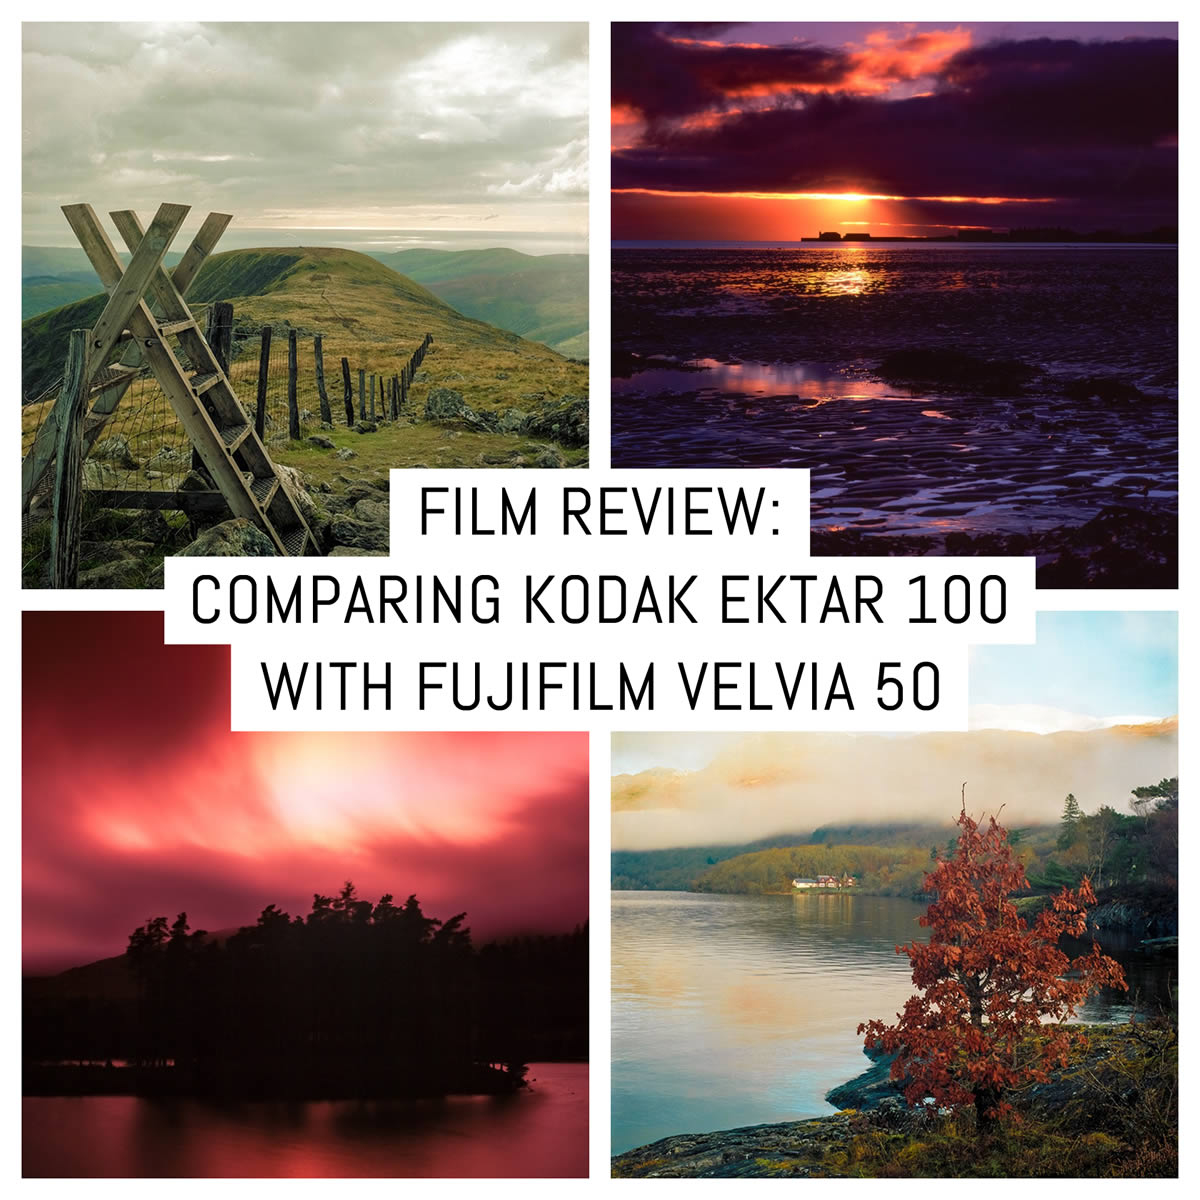 Film stock review: Comparing Kodak Ektar 100 to Fujifilm Velvia 50